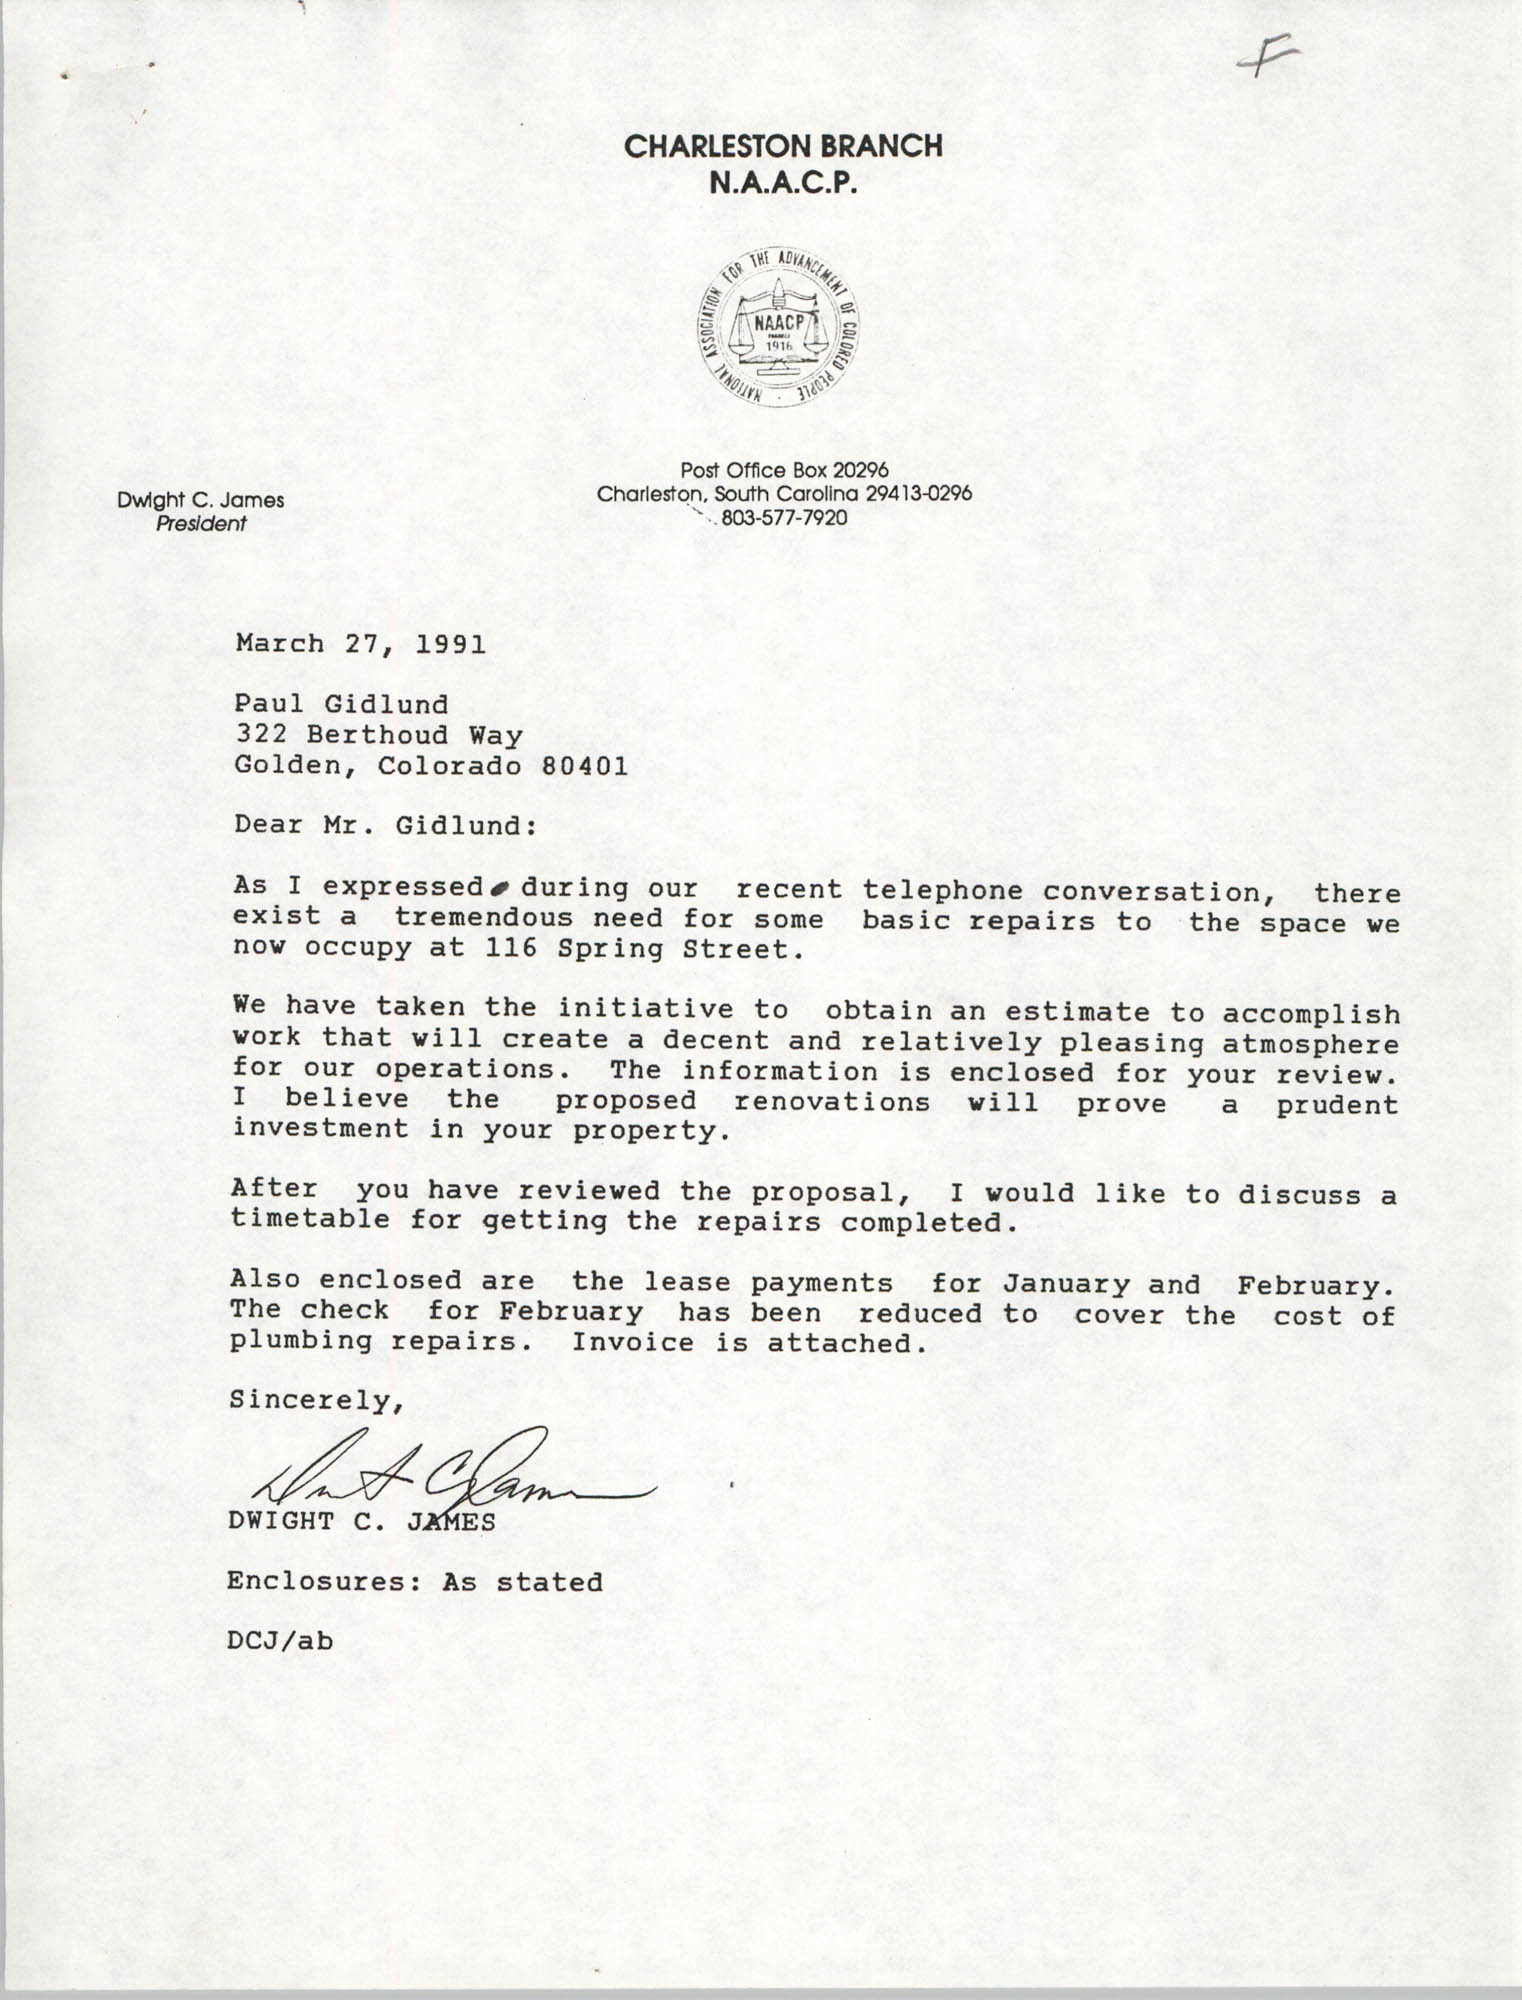 Letter from Dwight C. James to Paul Gidlund, March 27, 1991